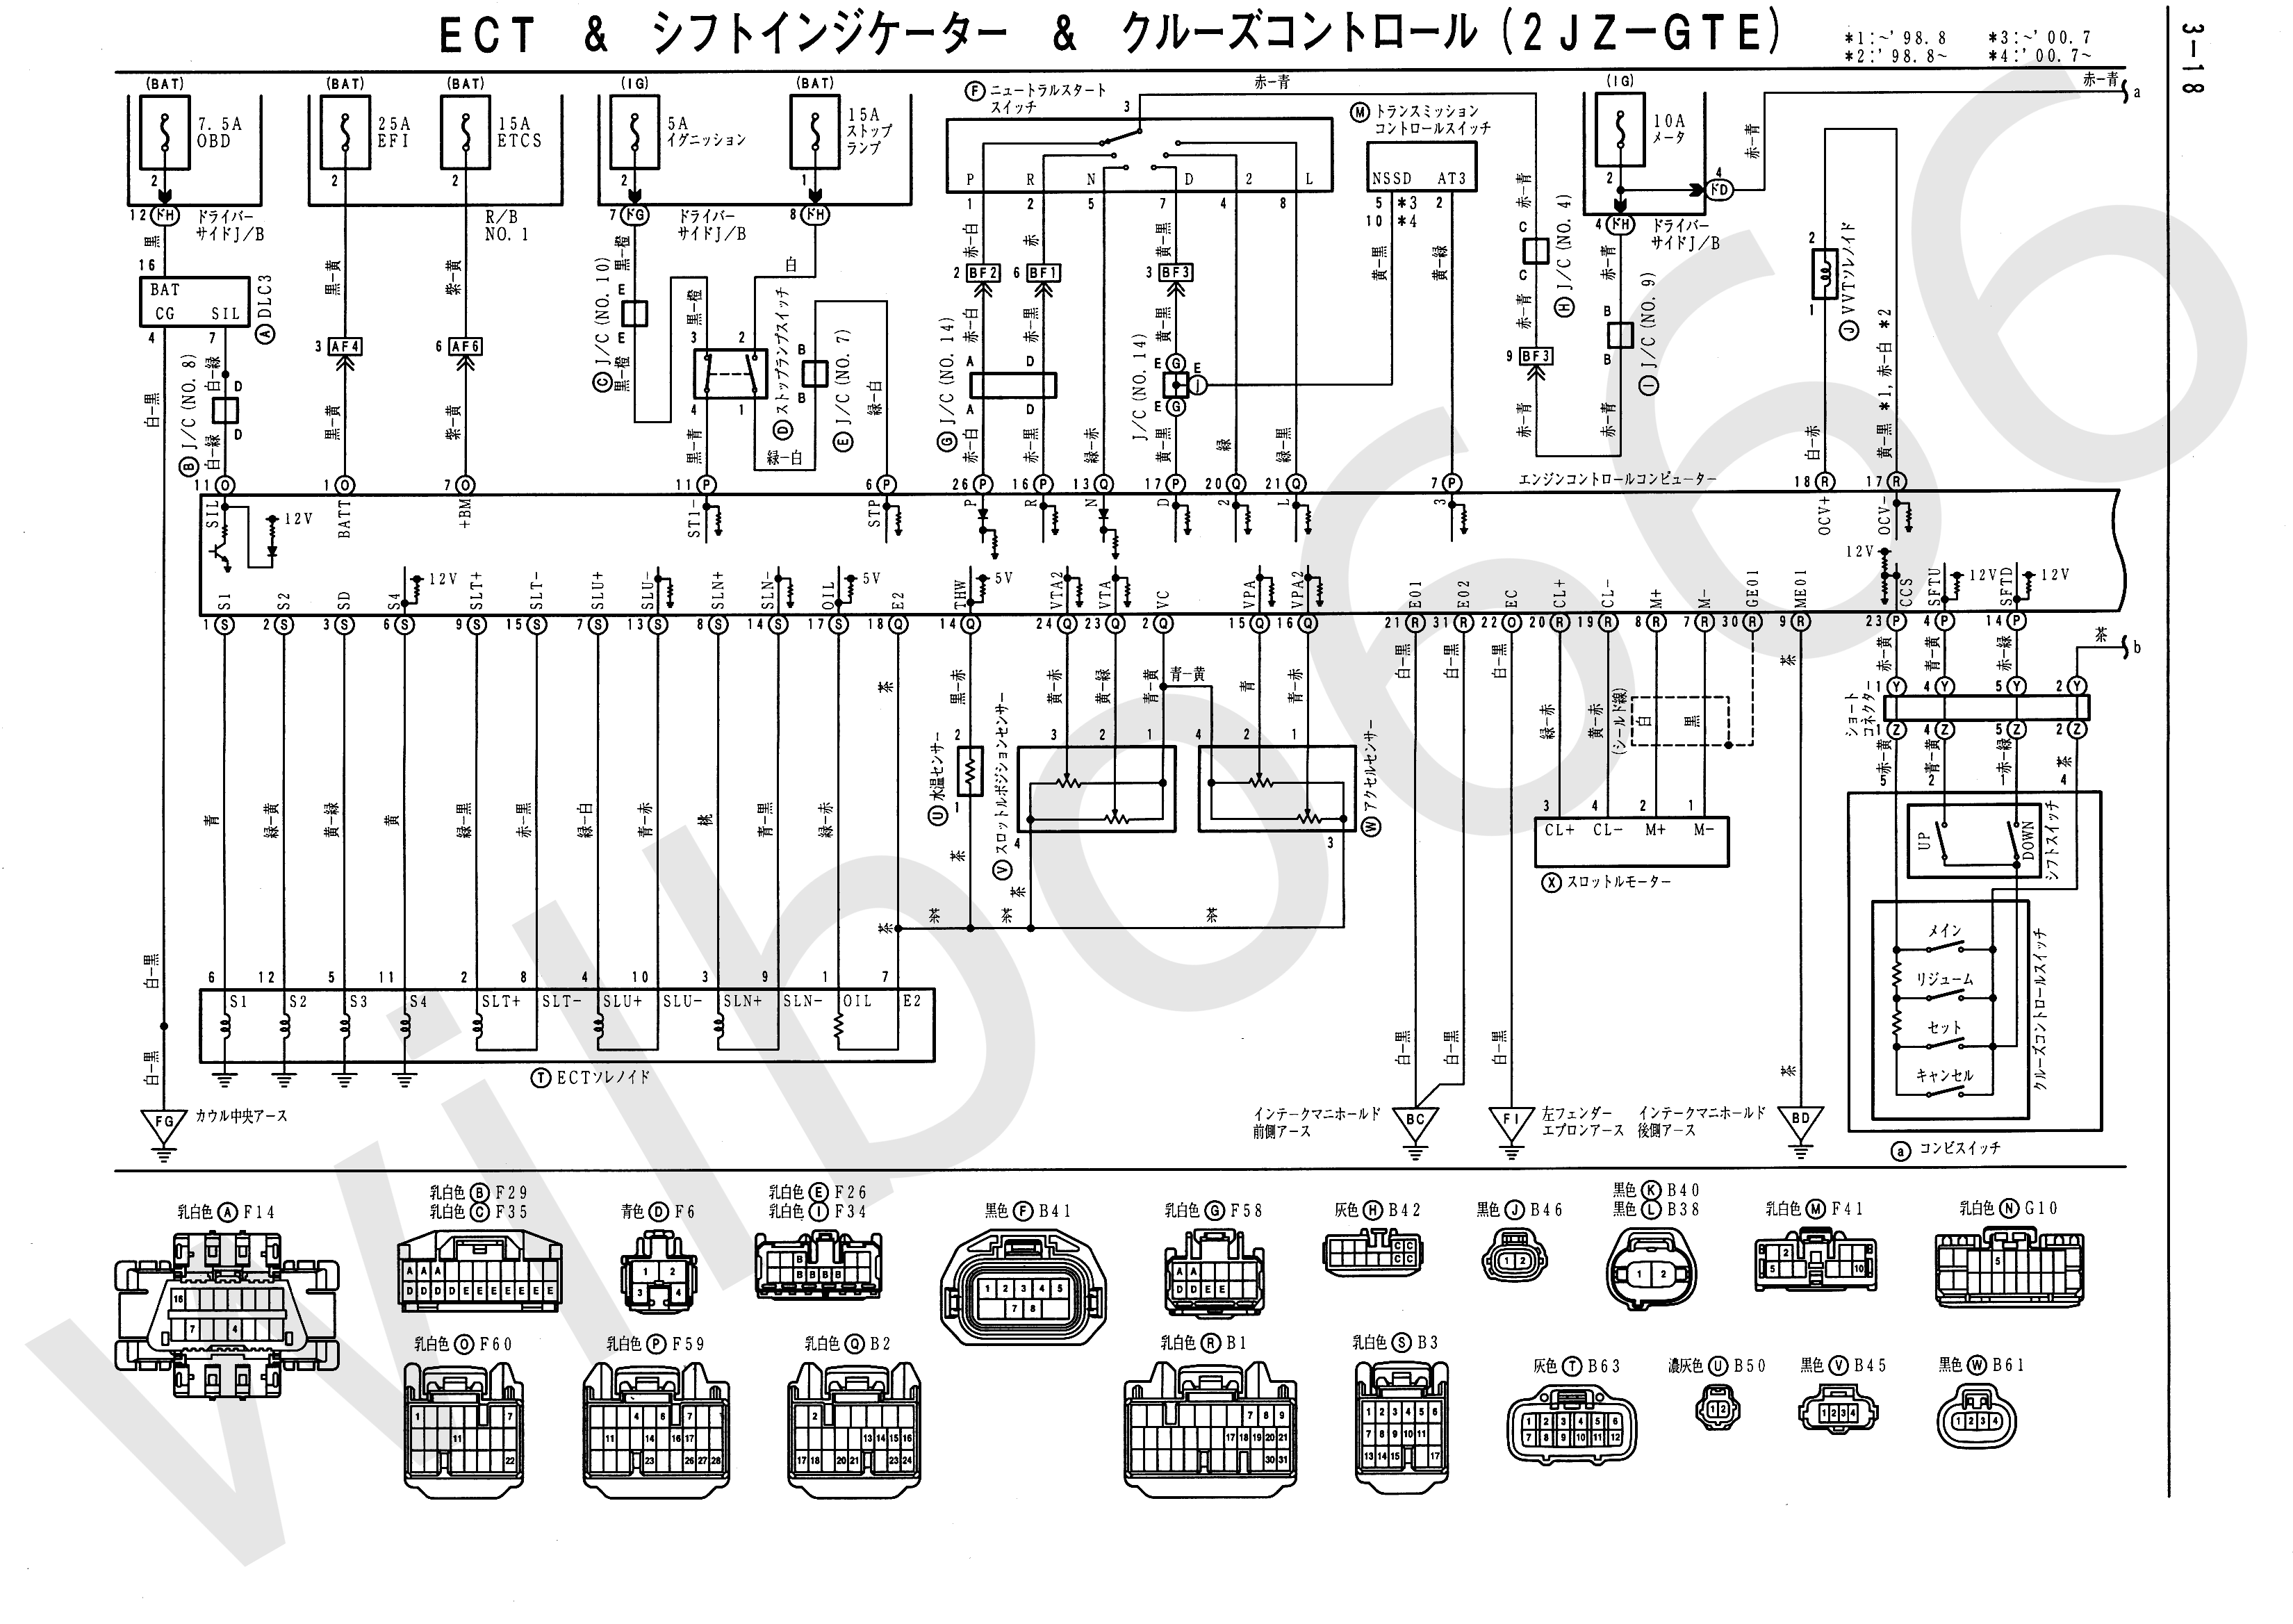 Sd Sensor Wiring Diagram Start Building A N52 Crankshaft Wilbo666 2jz Gte Vvti Jzs161 Aristo Engine Rh Pbworks Com Position